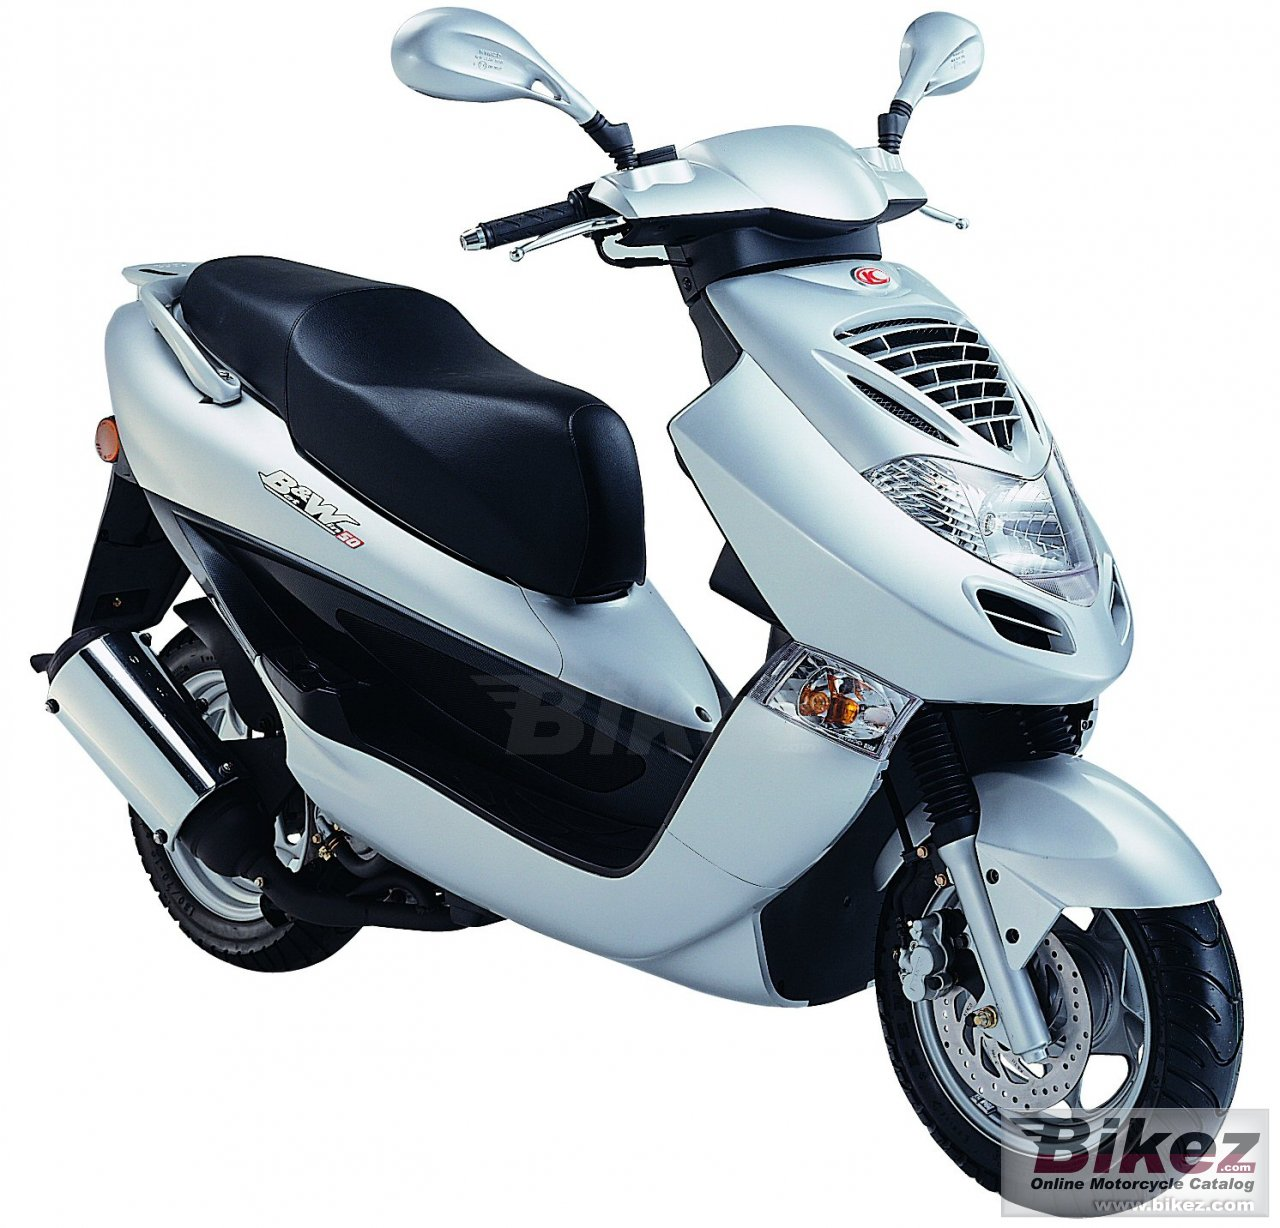 Big Kymco bet and win picture and wallpaper from Bikez.com